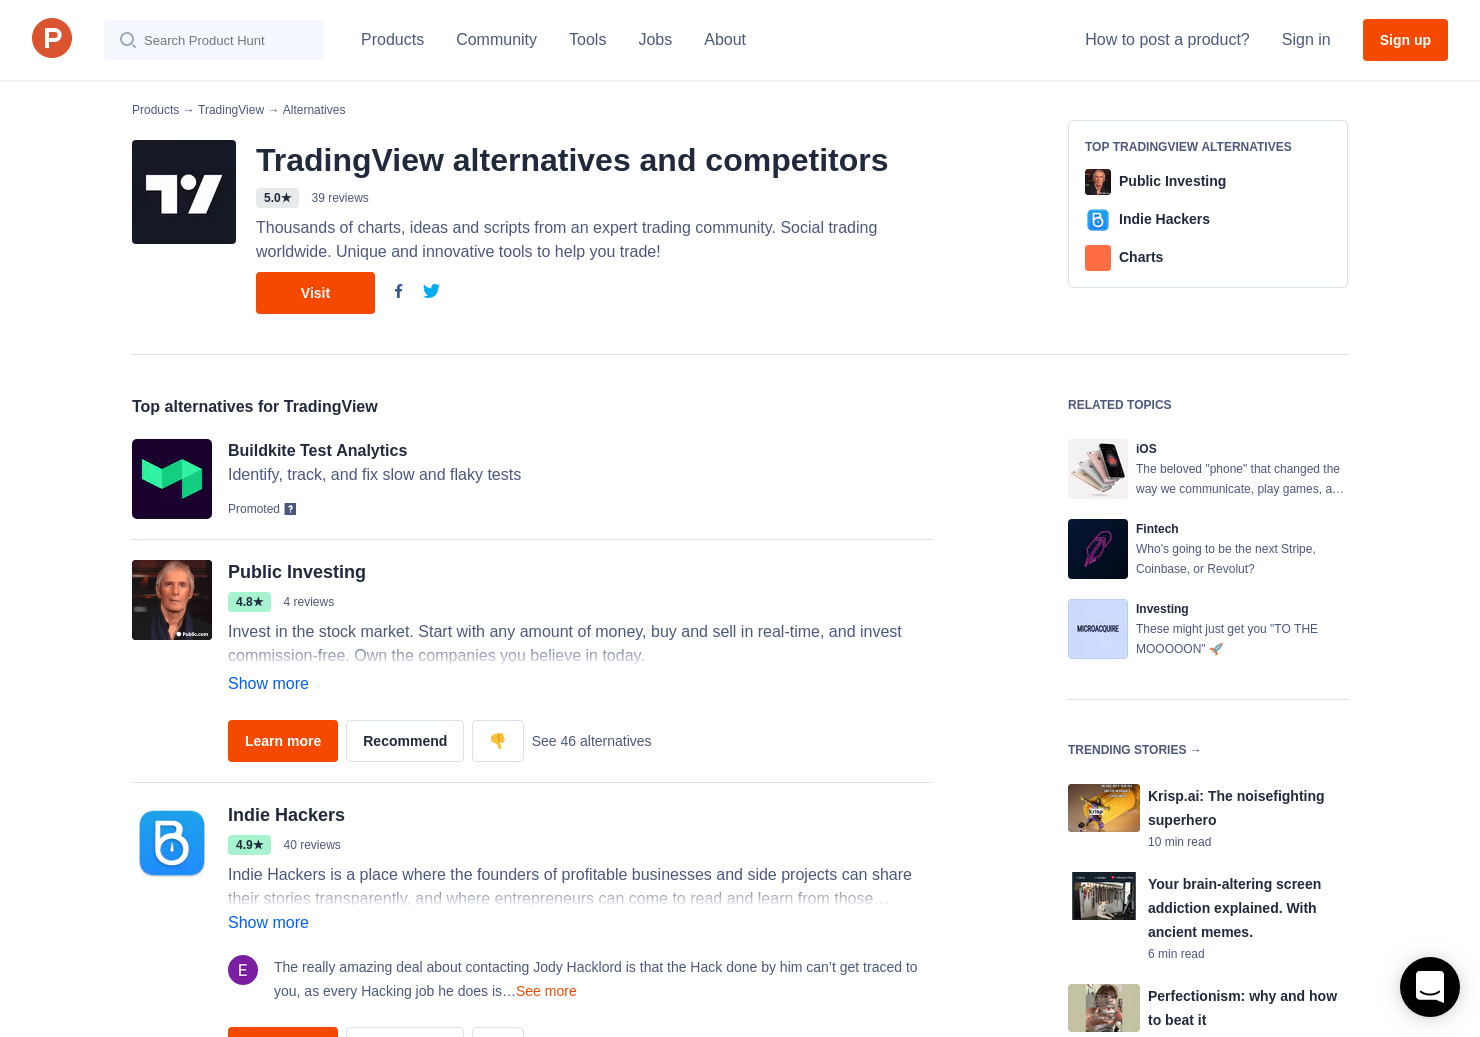 19 Alternatives to TradingView for iPhone | Product Hunt